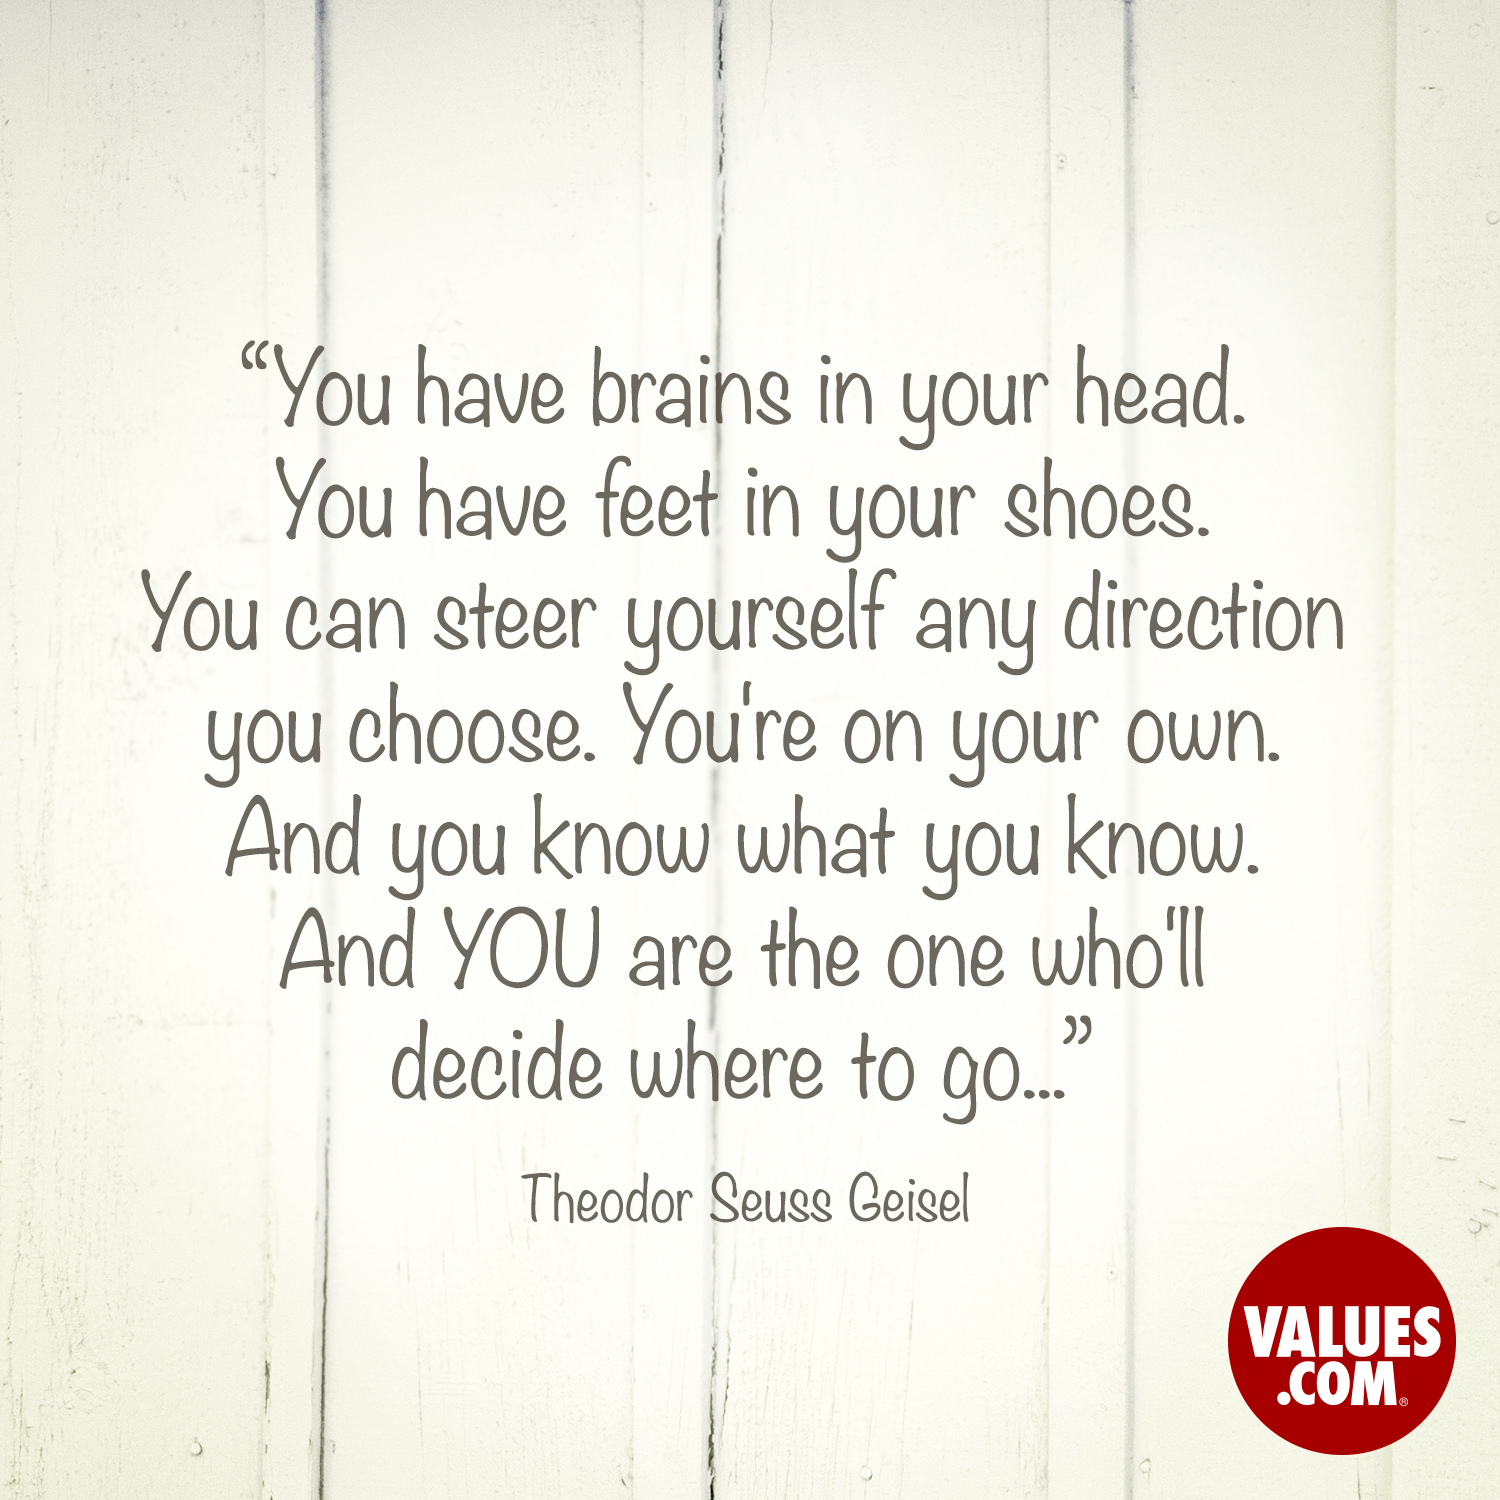 You have brains in your head. You have feet in your shoes. You can steer yourself any direction you choose. You're on your own. And you know what you know. And YOU are the one who'll decide where to go...  —Theodor Seuss Geisel